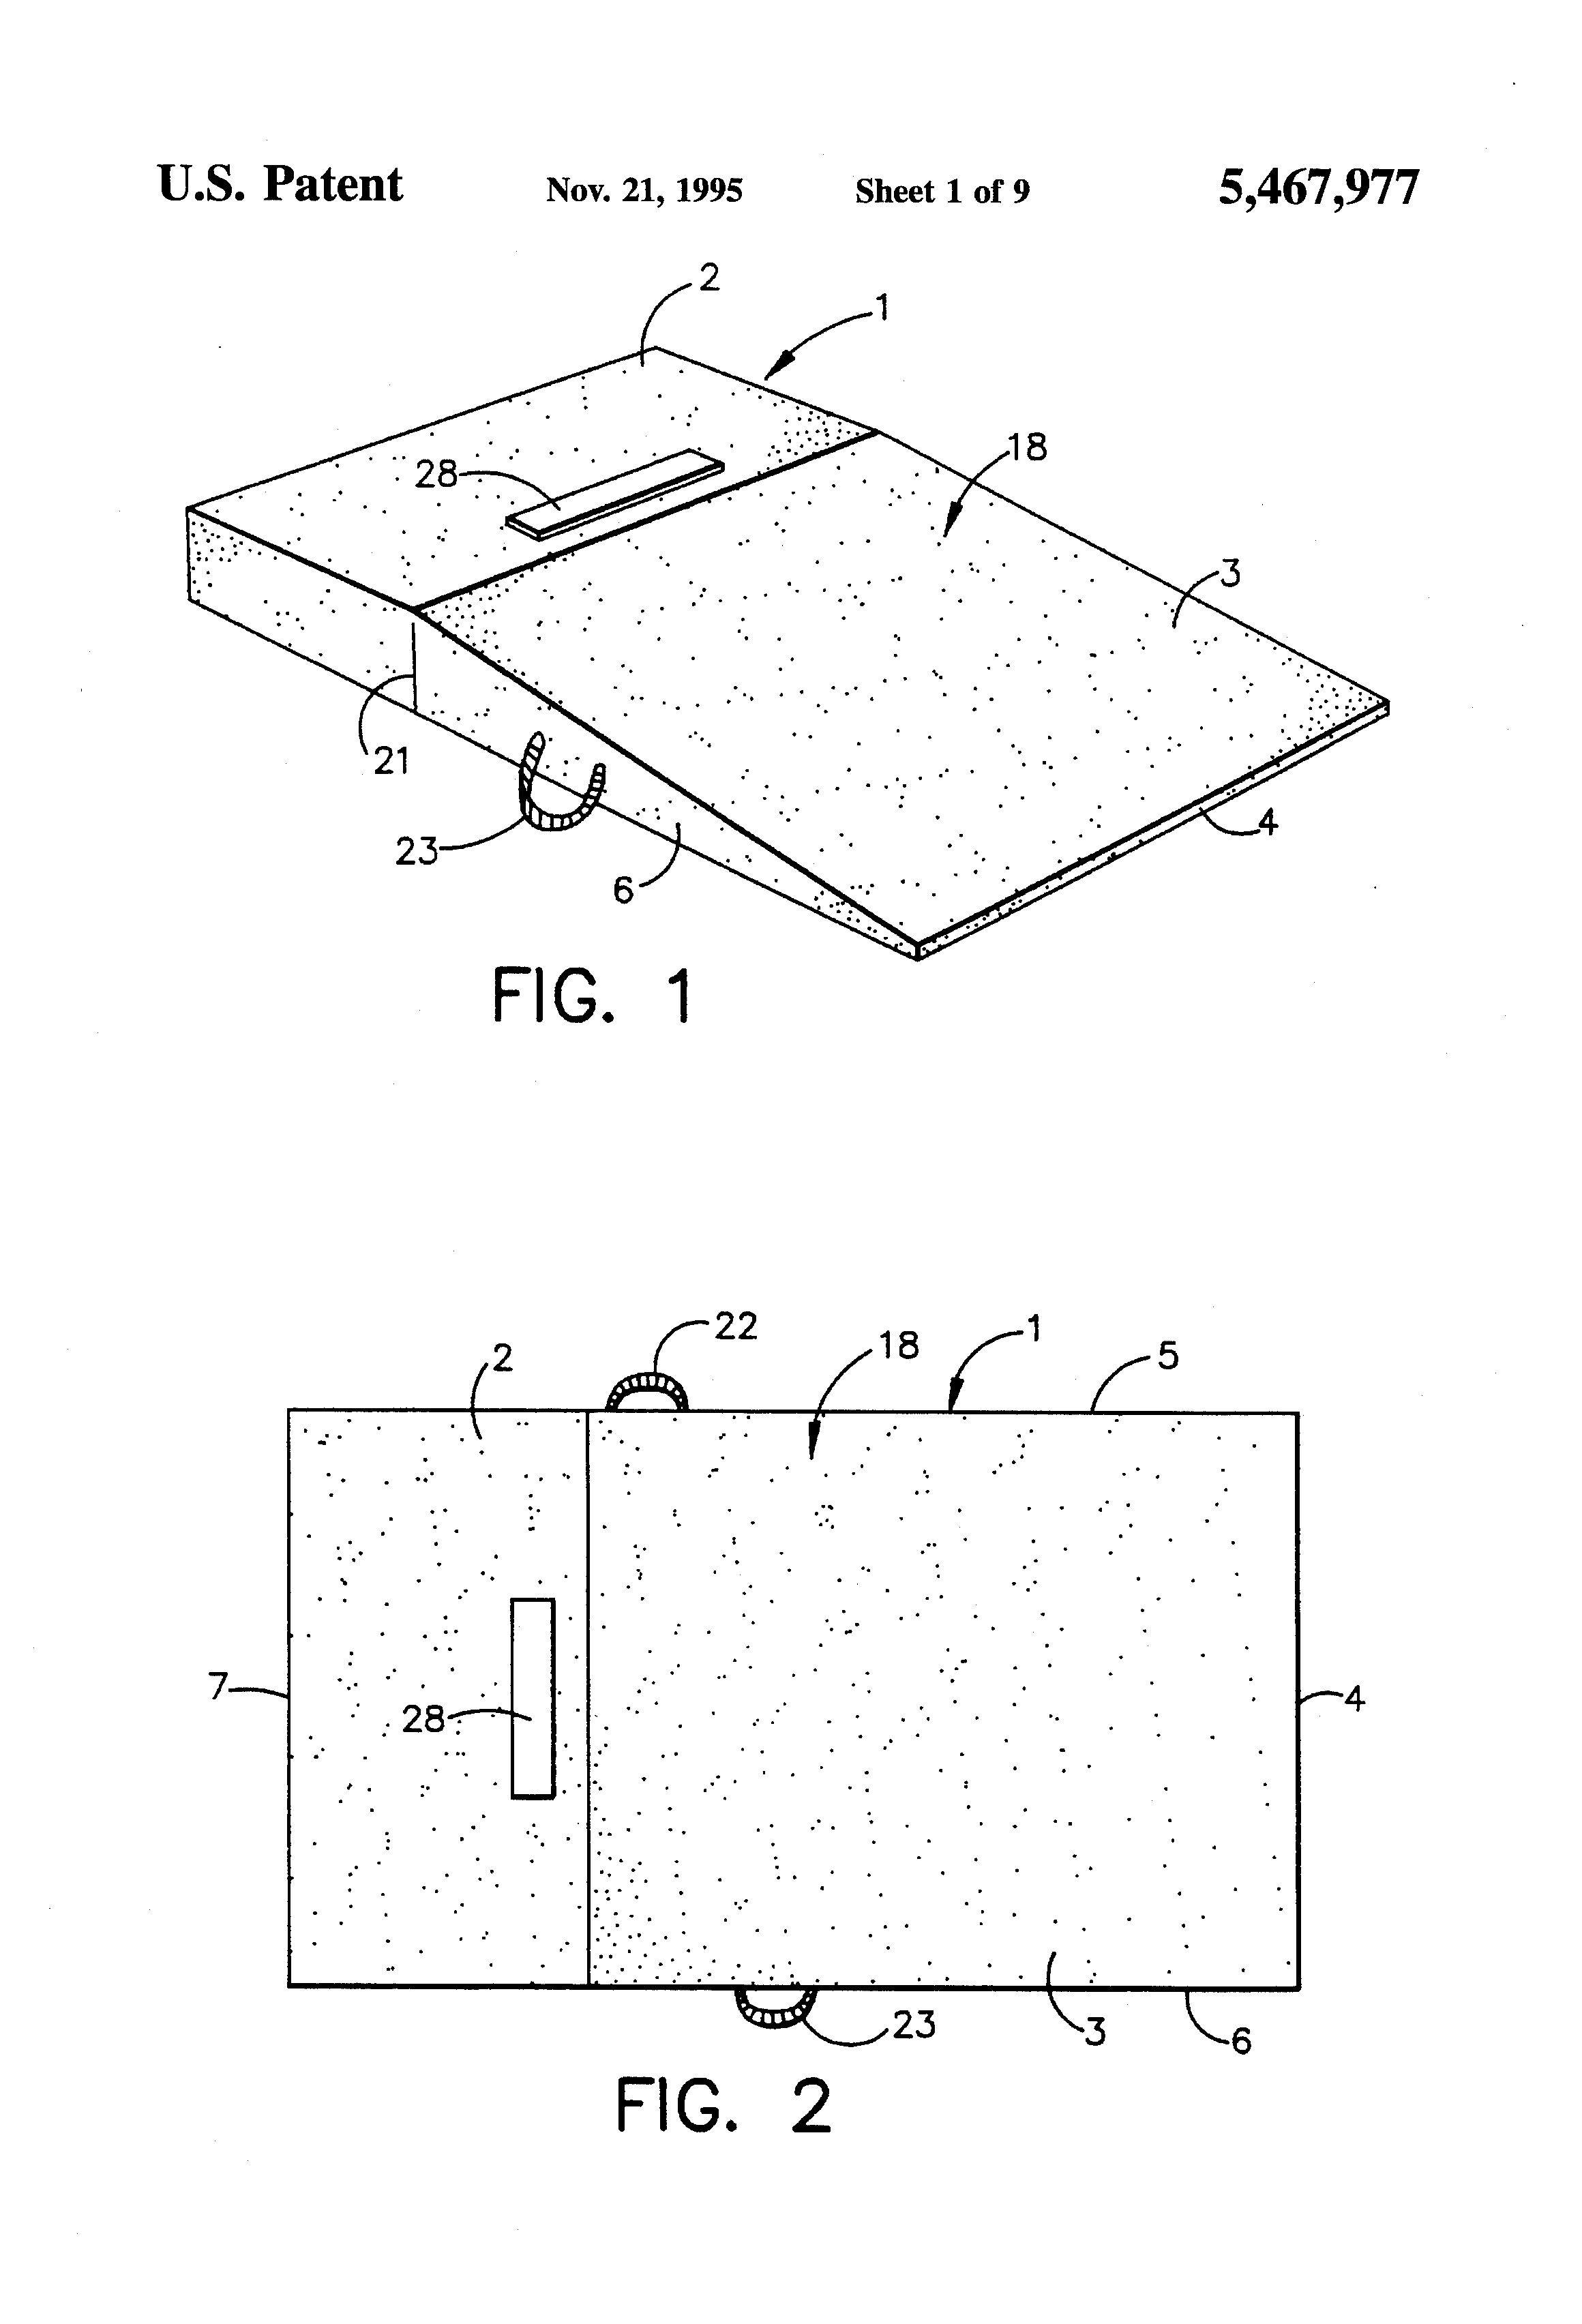 How To Build A Portable Pitching Mound >> Patent US5467977 - Portable pitching mound - Google Patents